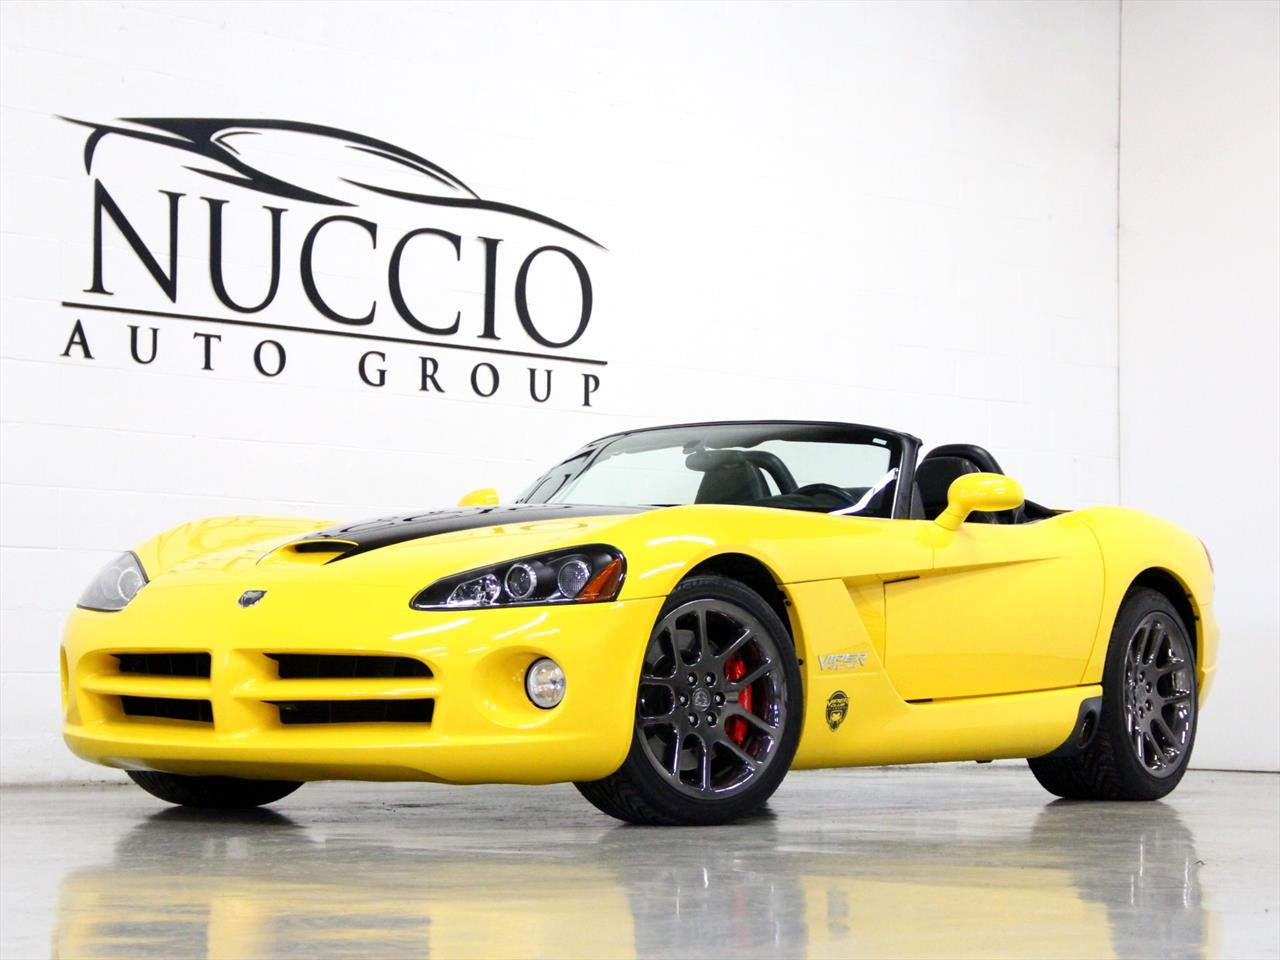 2005 Dodge Viper SRT 10 Viper Club of America Special Edition